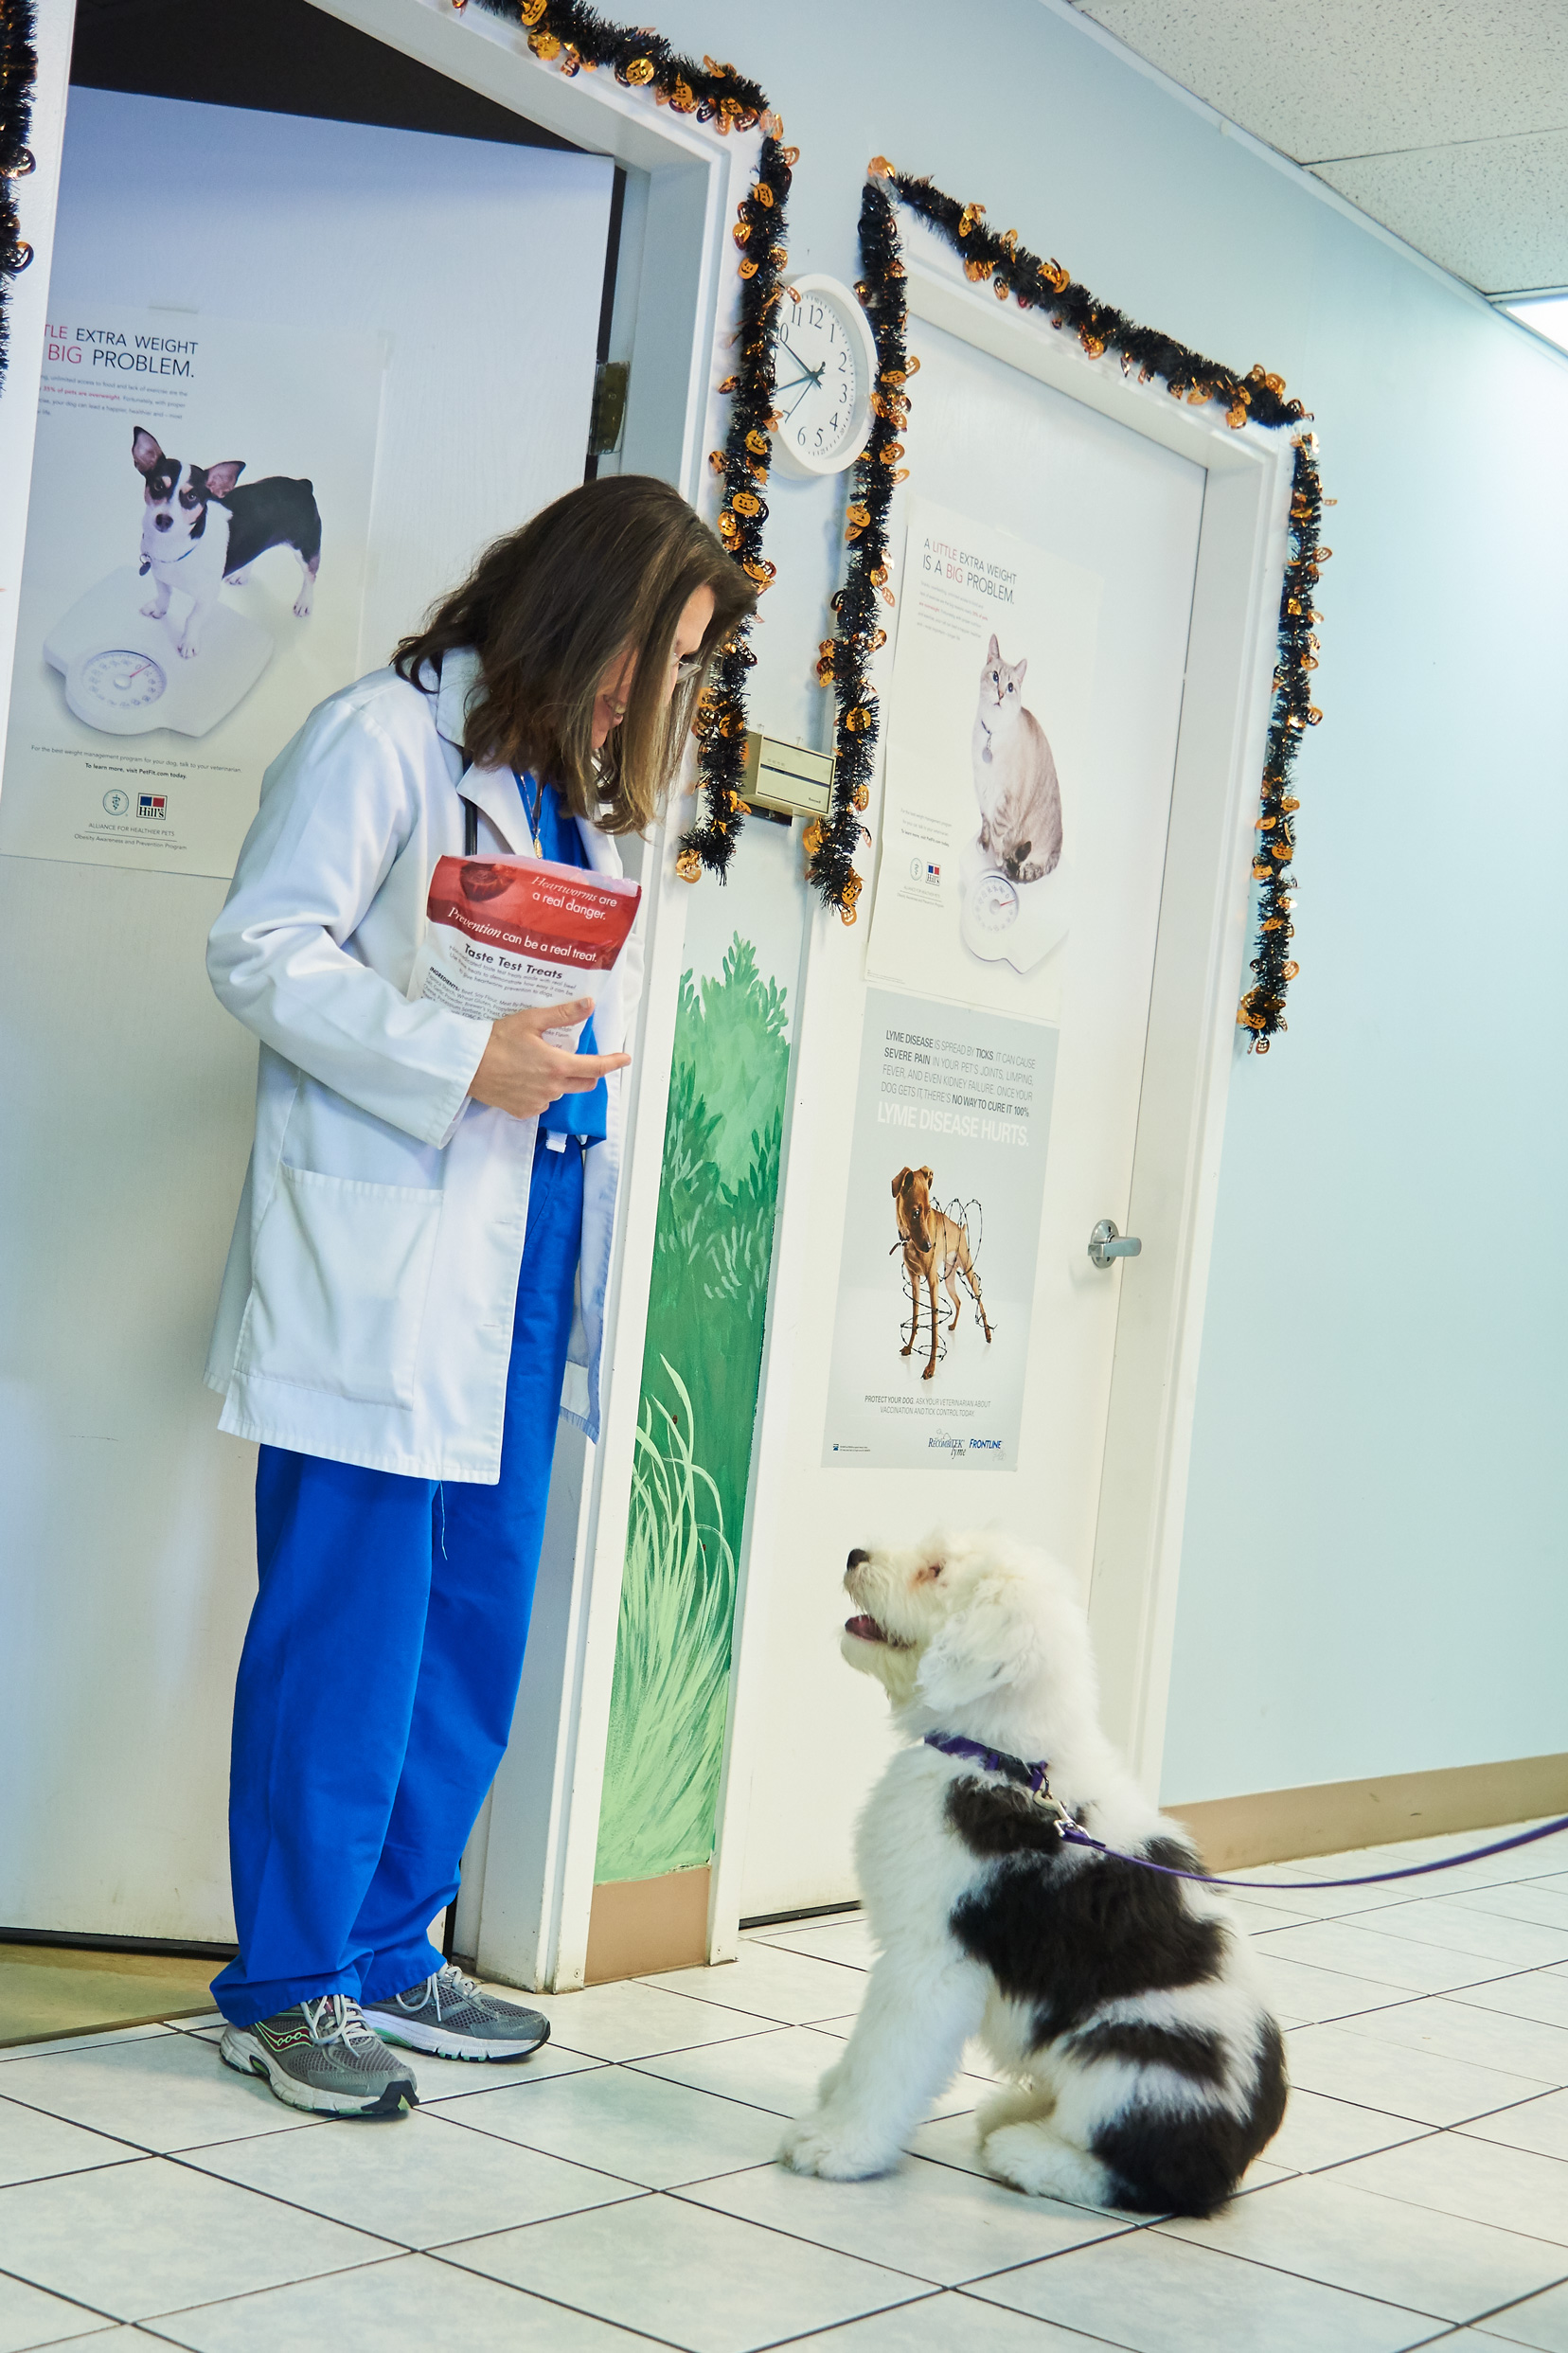 Dr. Dodin and Boomer